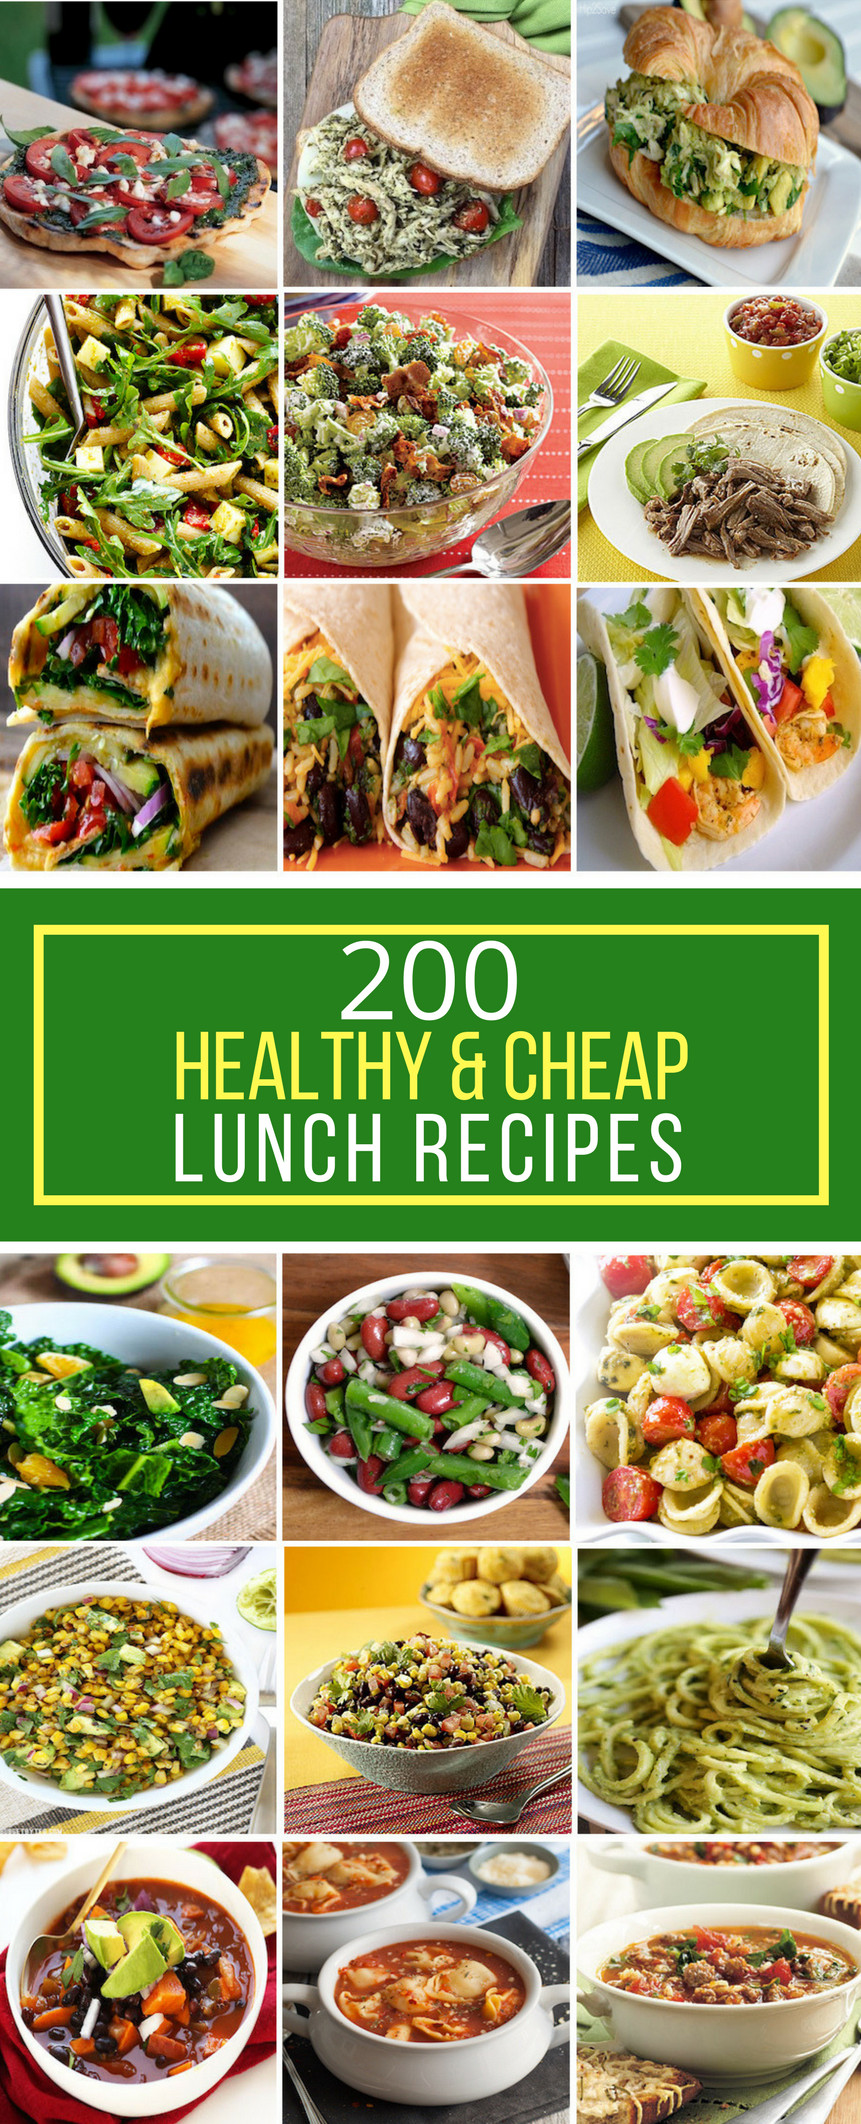 Healthy Cheap Lunches  200 Healthy & Cheap Lunch Recipes Prudent Penny Pincher